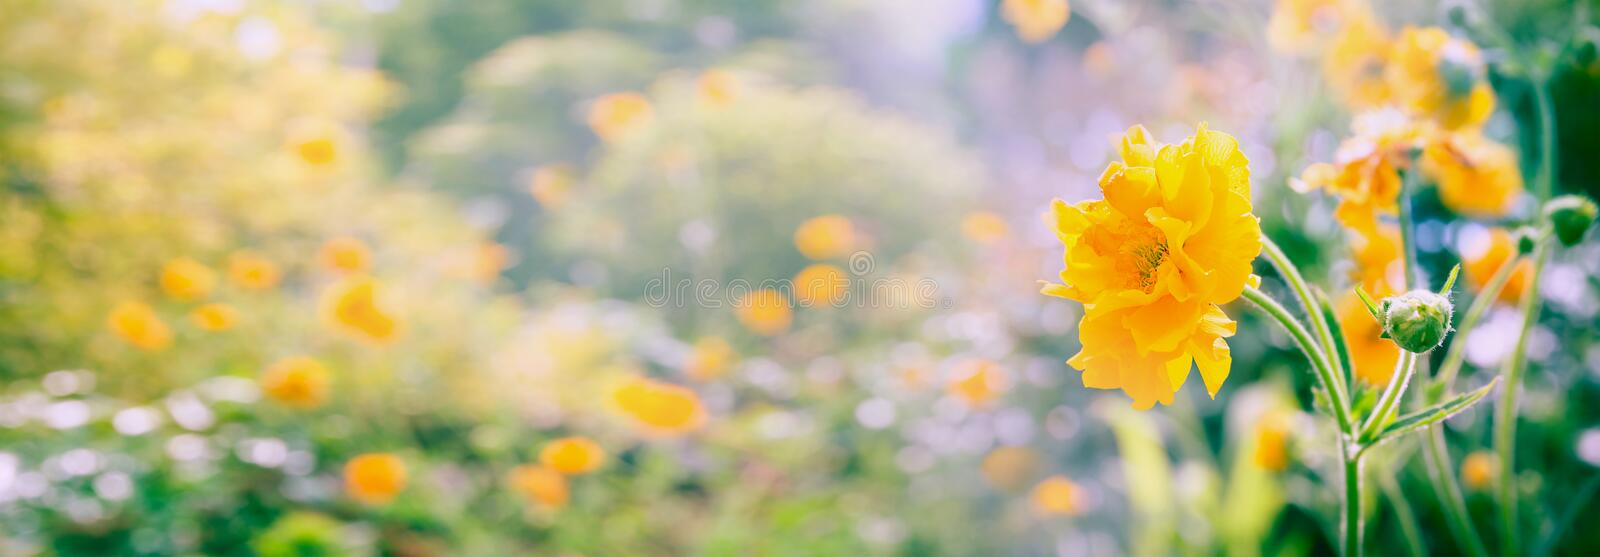 Yellow Geum flowers panorama on blurred summer garden or park background, banner. For website